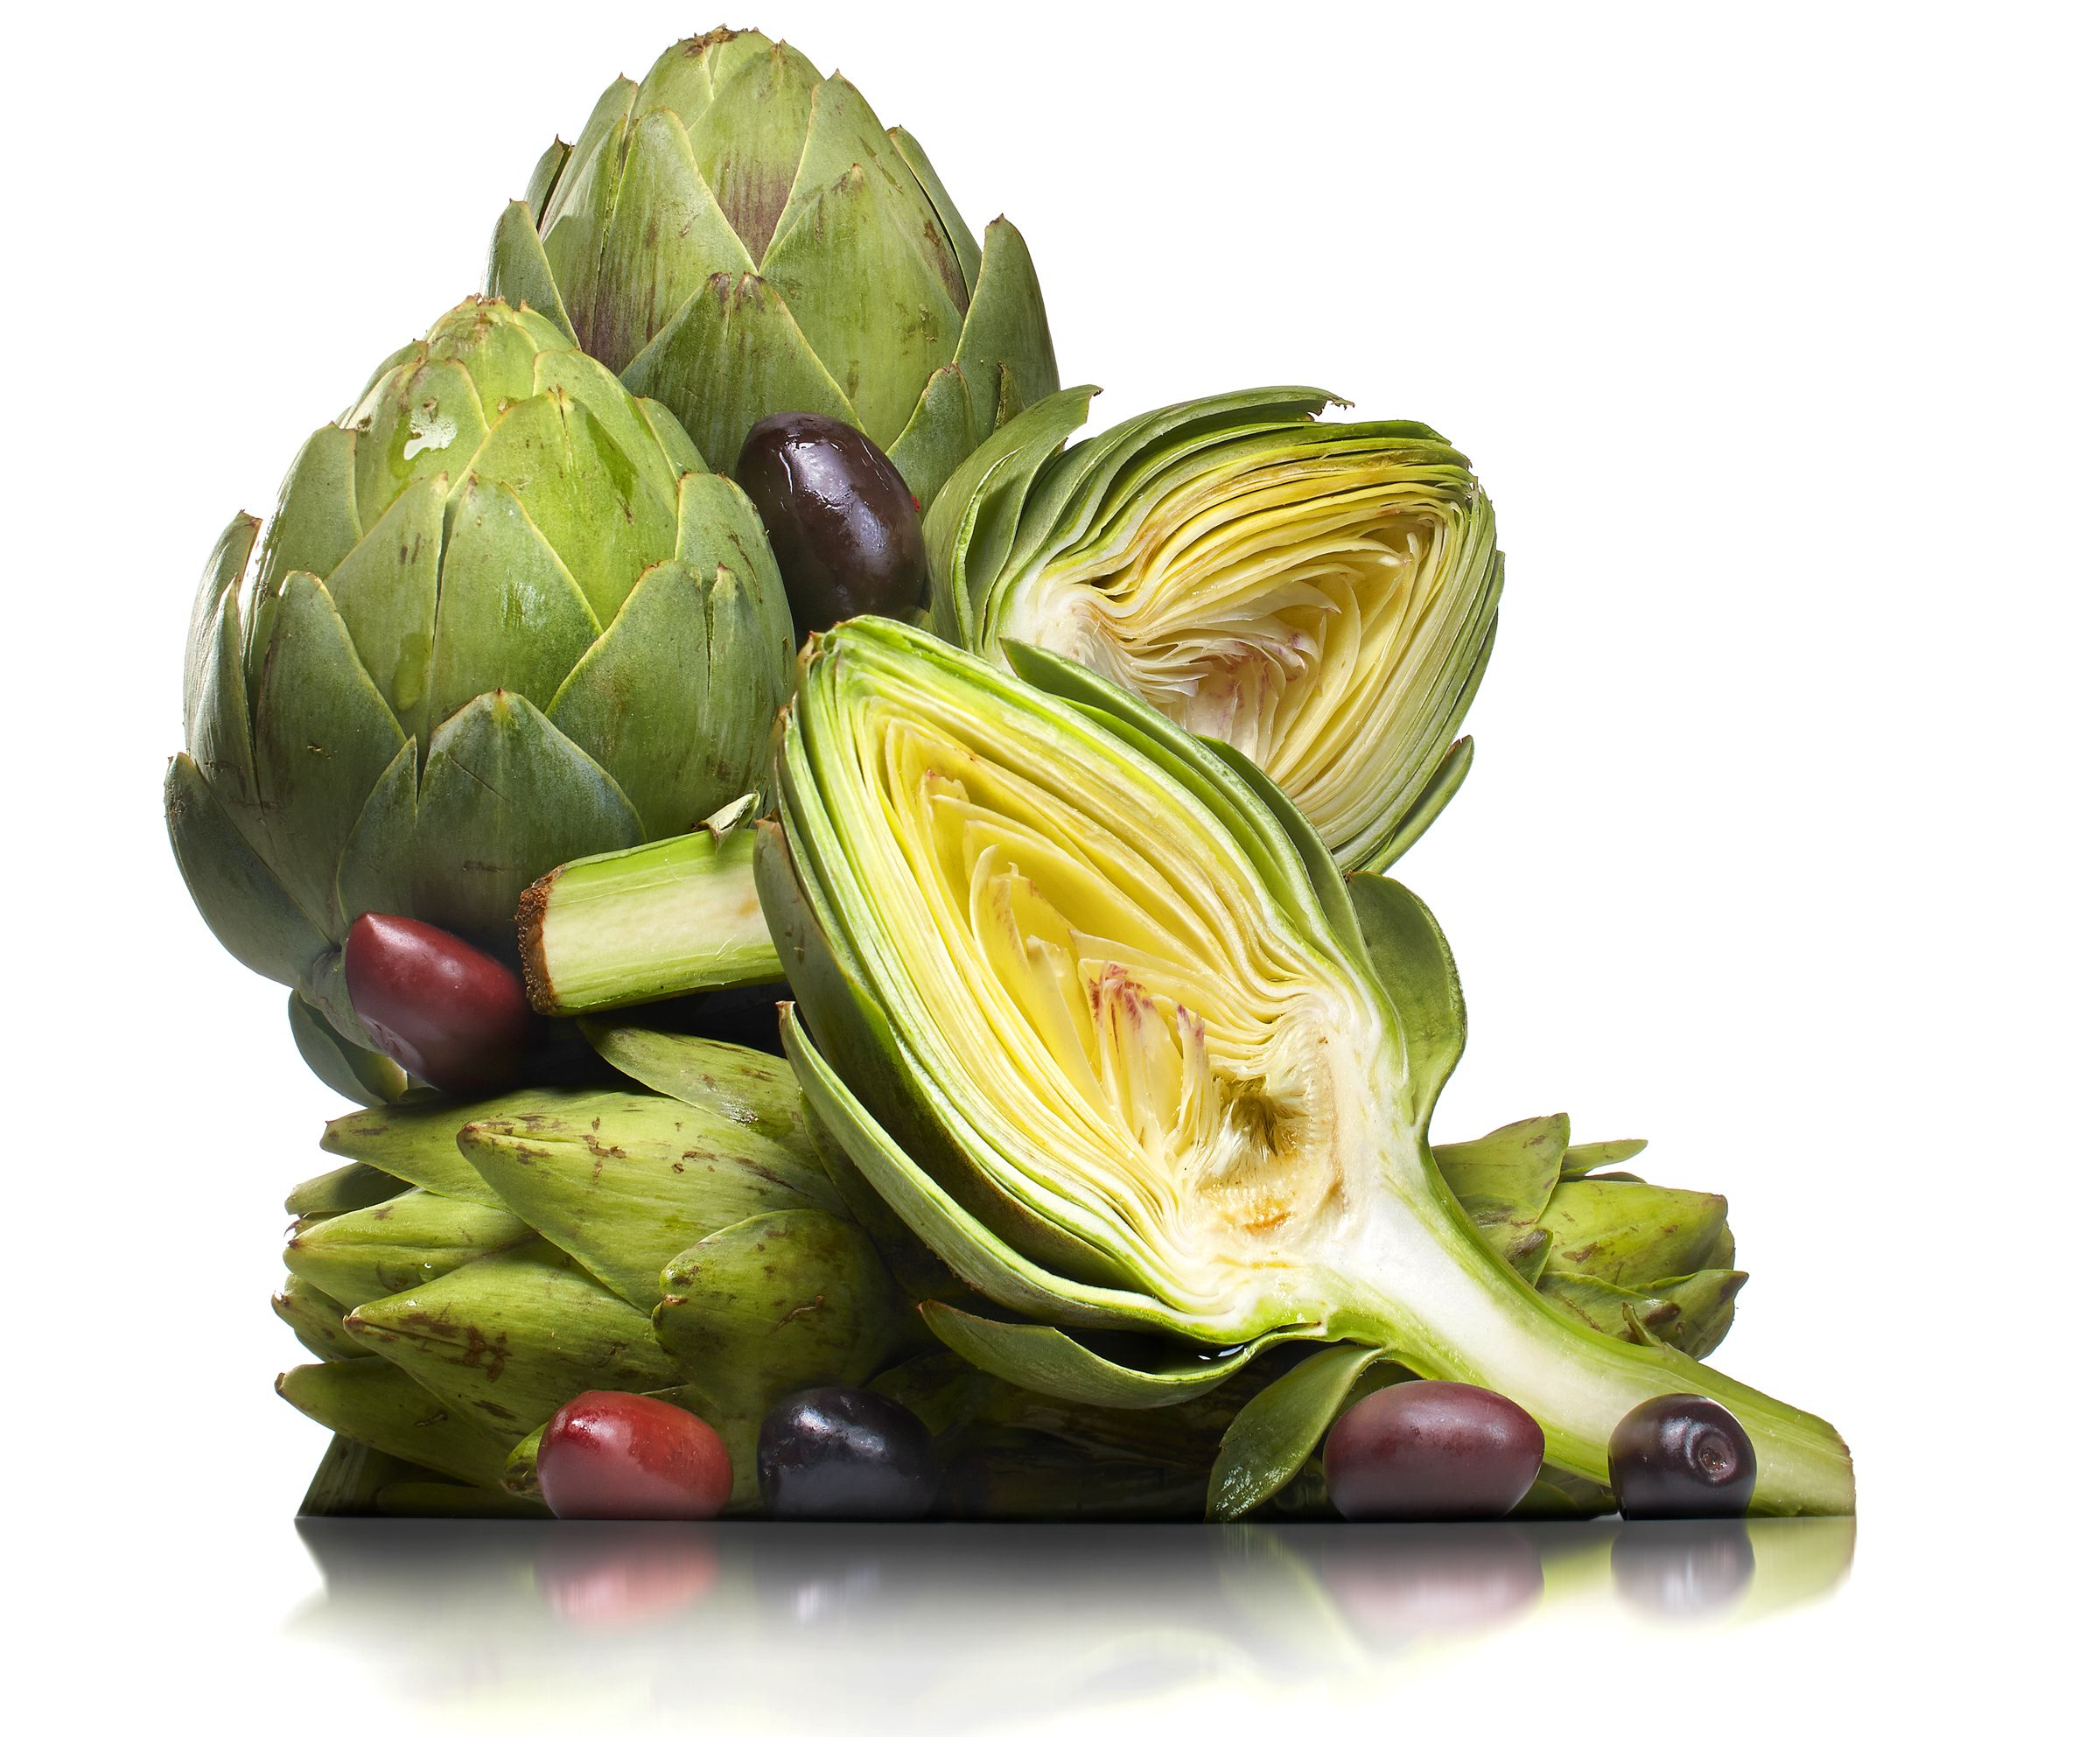 Artichoke Selection and Storage Information